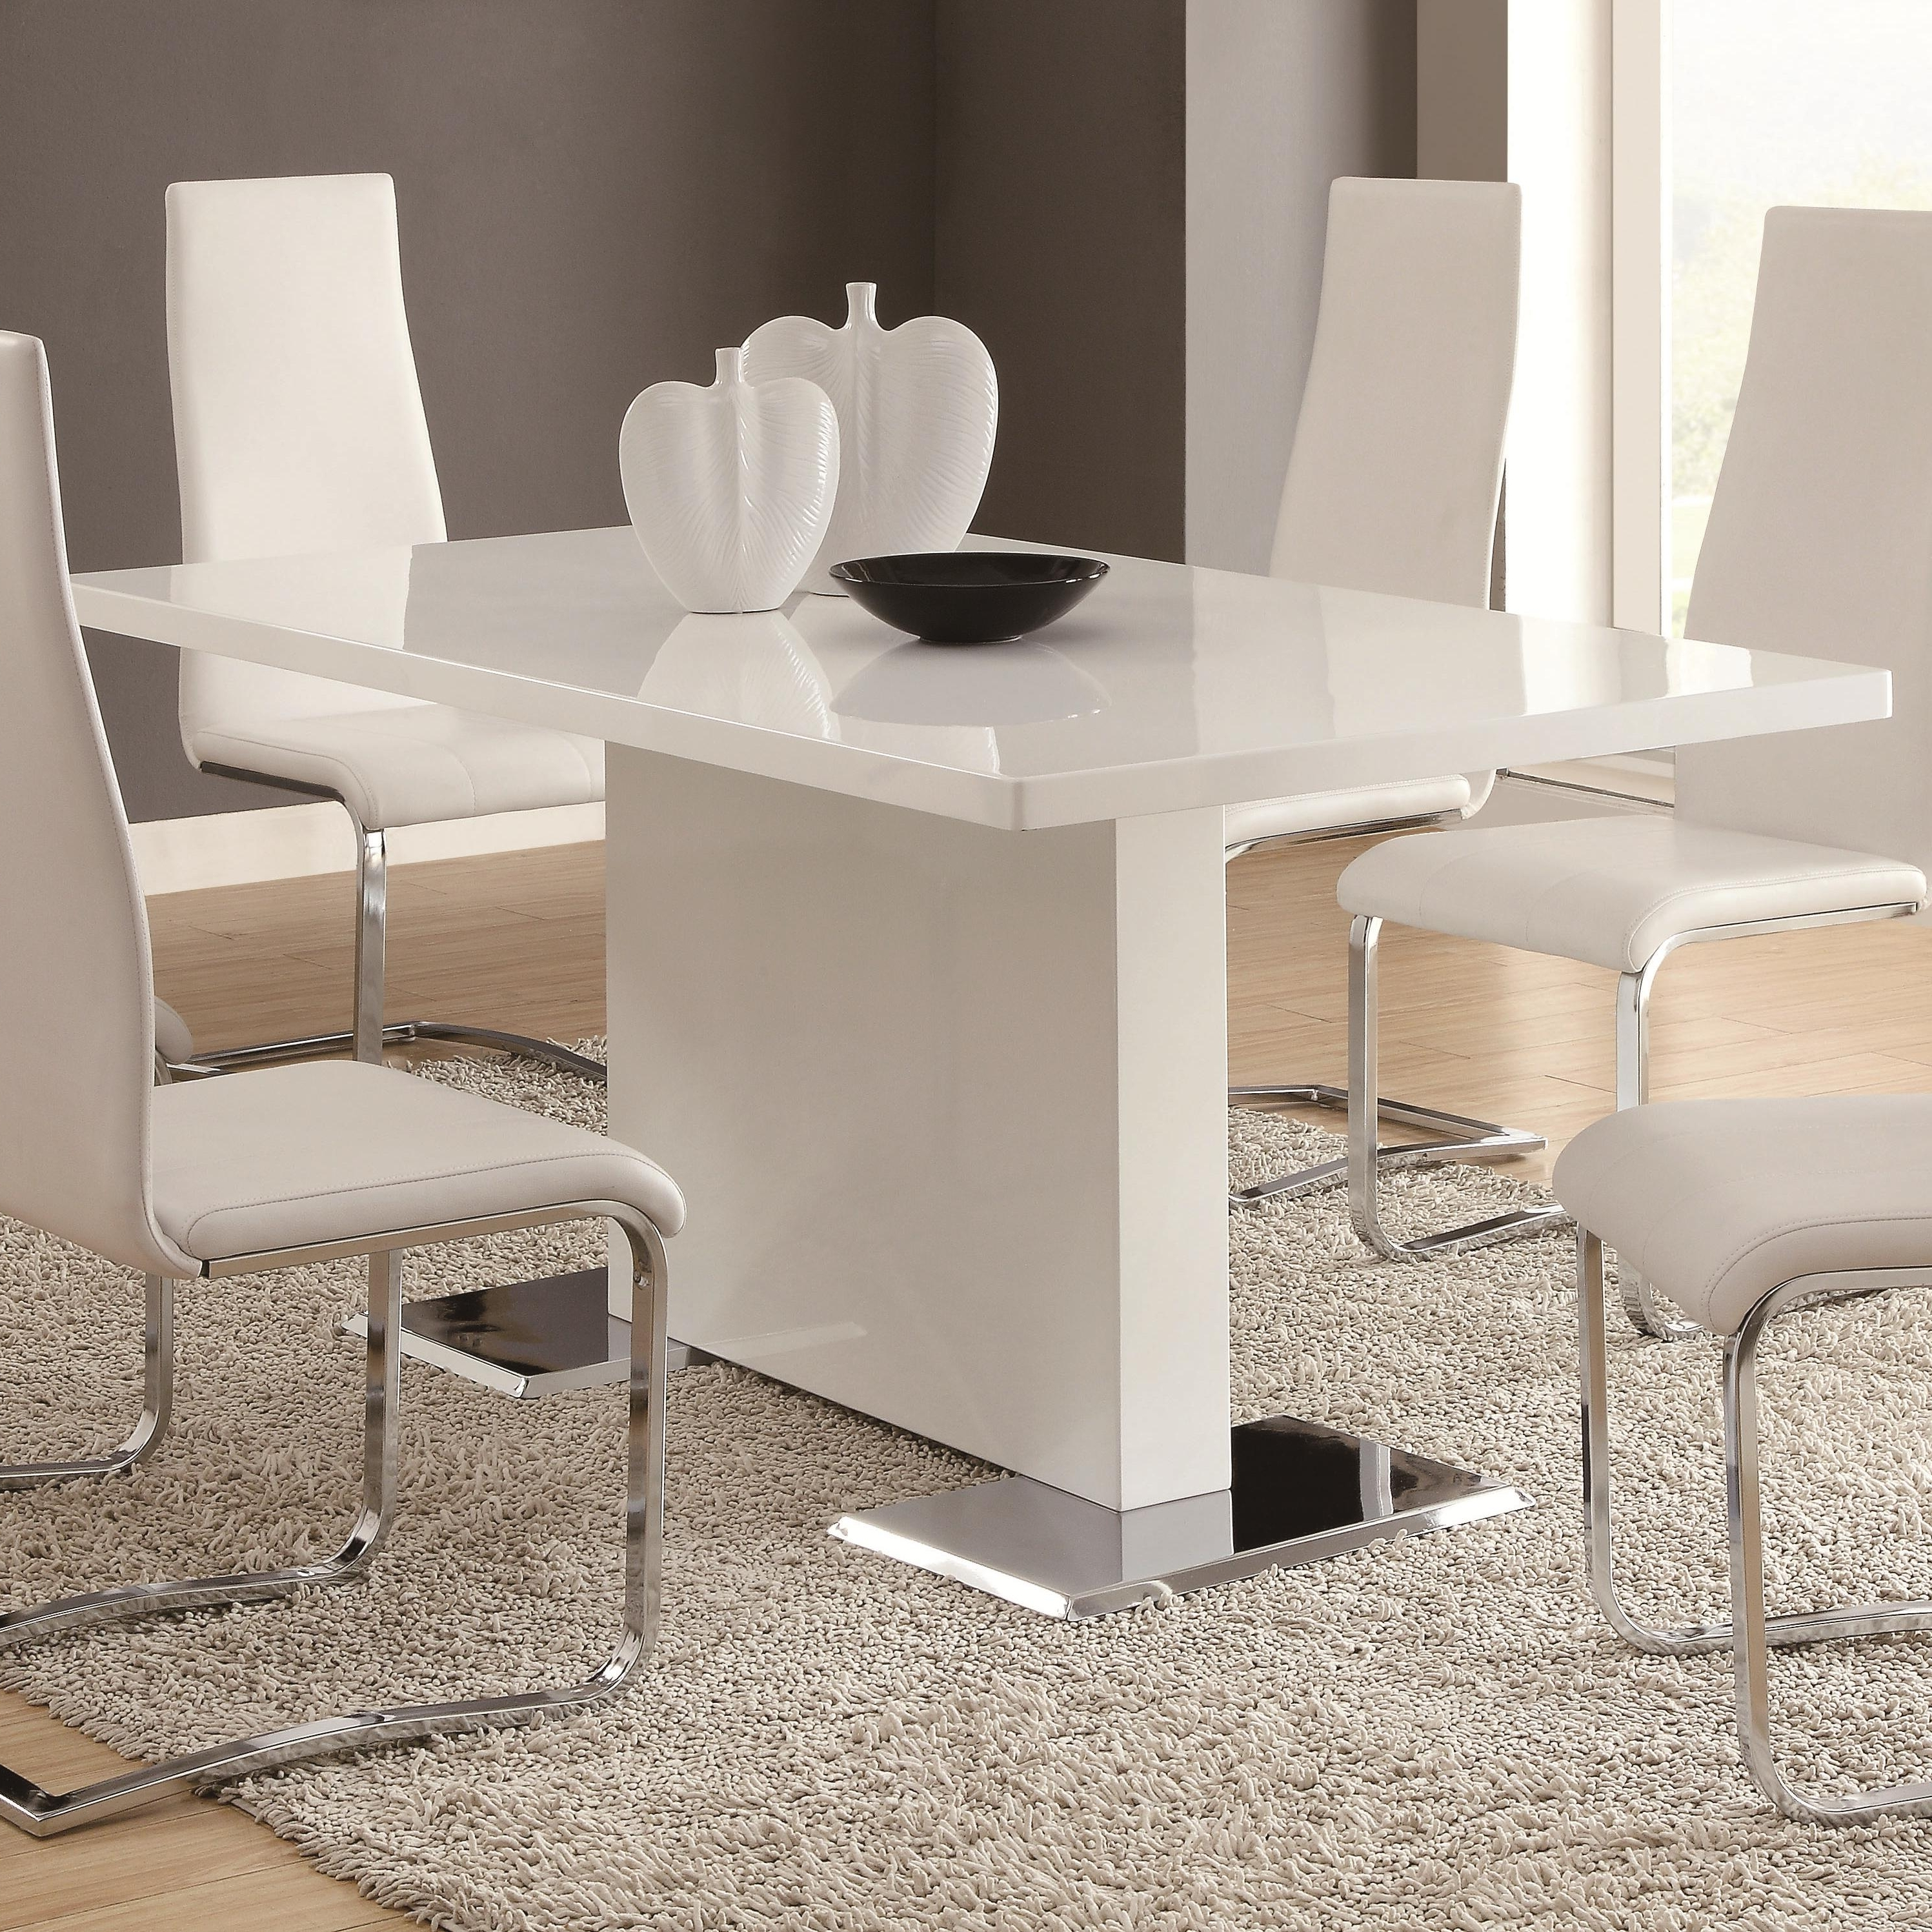 Most Recently Released Coaster Modern Dining 102310 White Dining Table With Chrome Metal For White Square Extending Dining Tables (View 21 of 25)